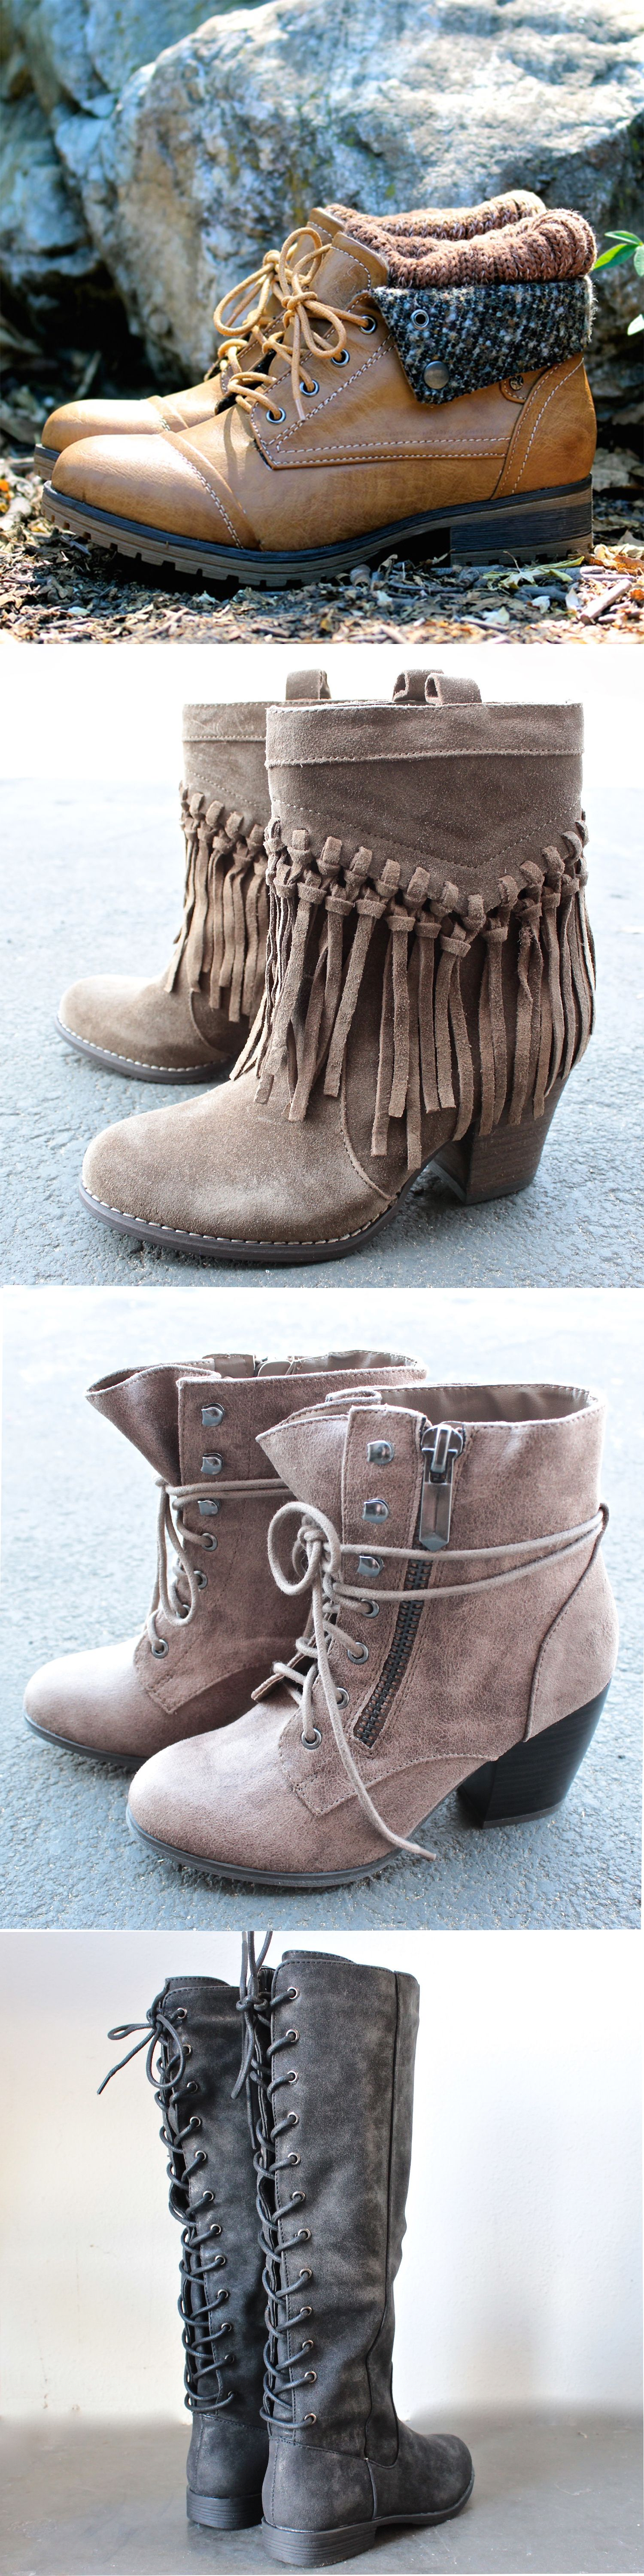 45a47abe0e6 Pin by Charlie Daniels on fall must haves   Shoes, Bootie boots ...